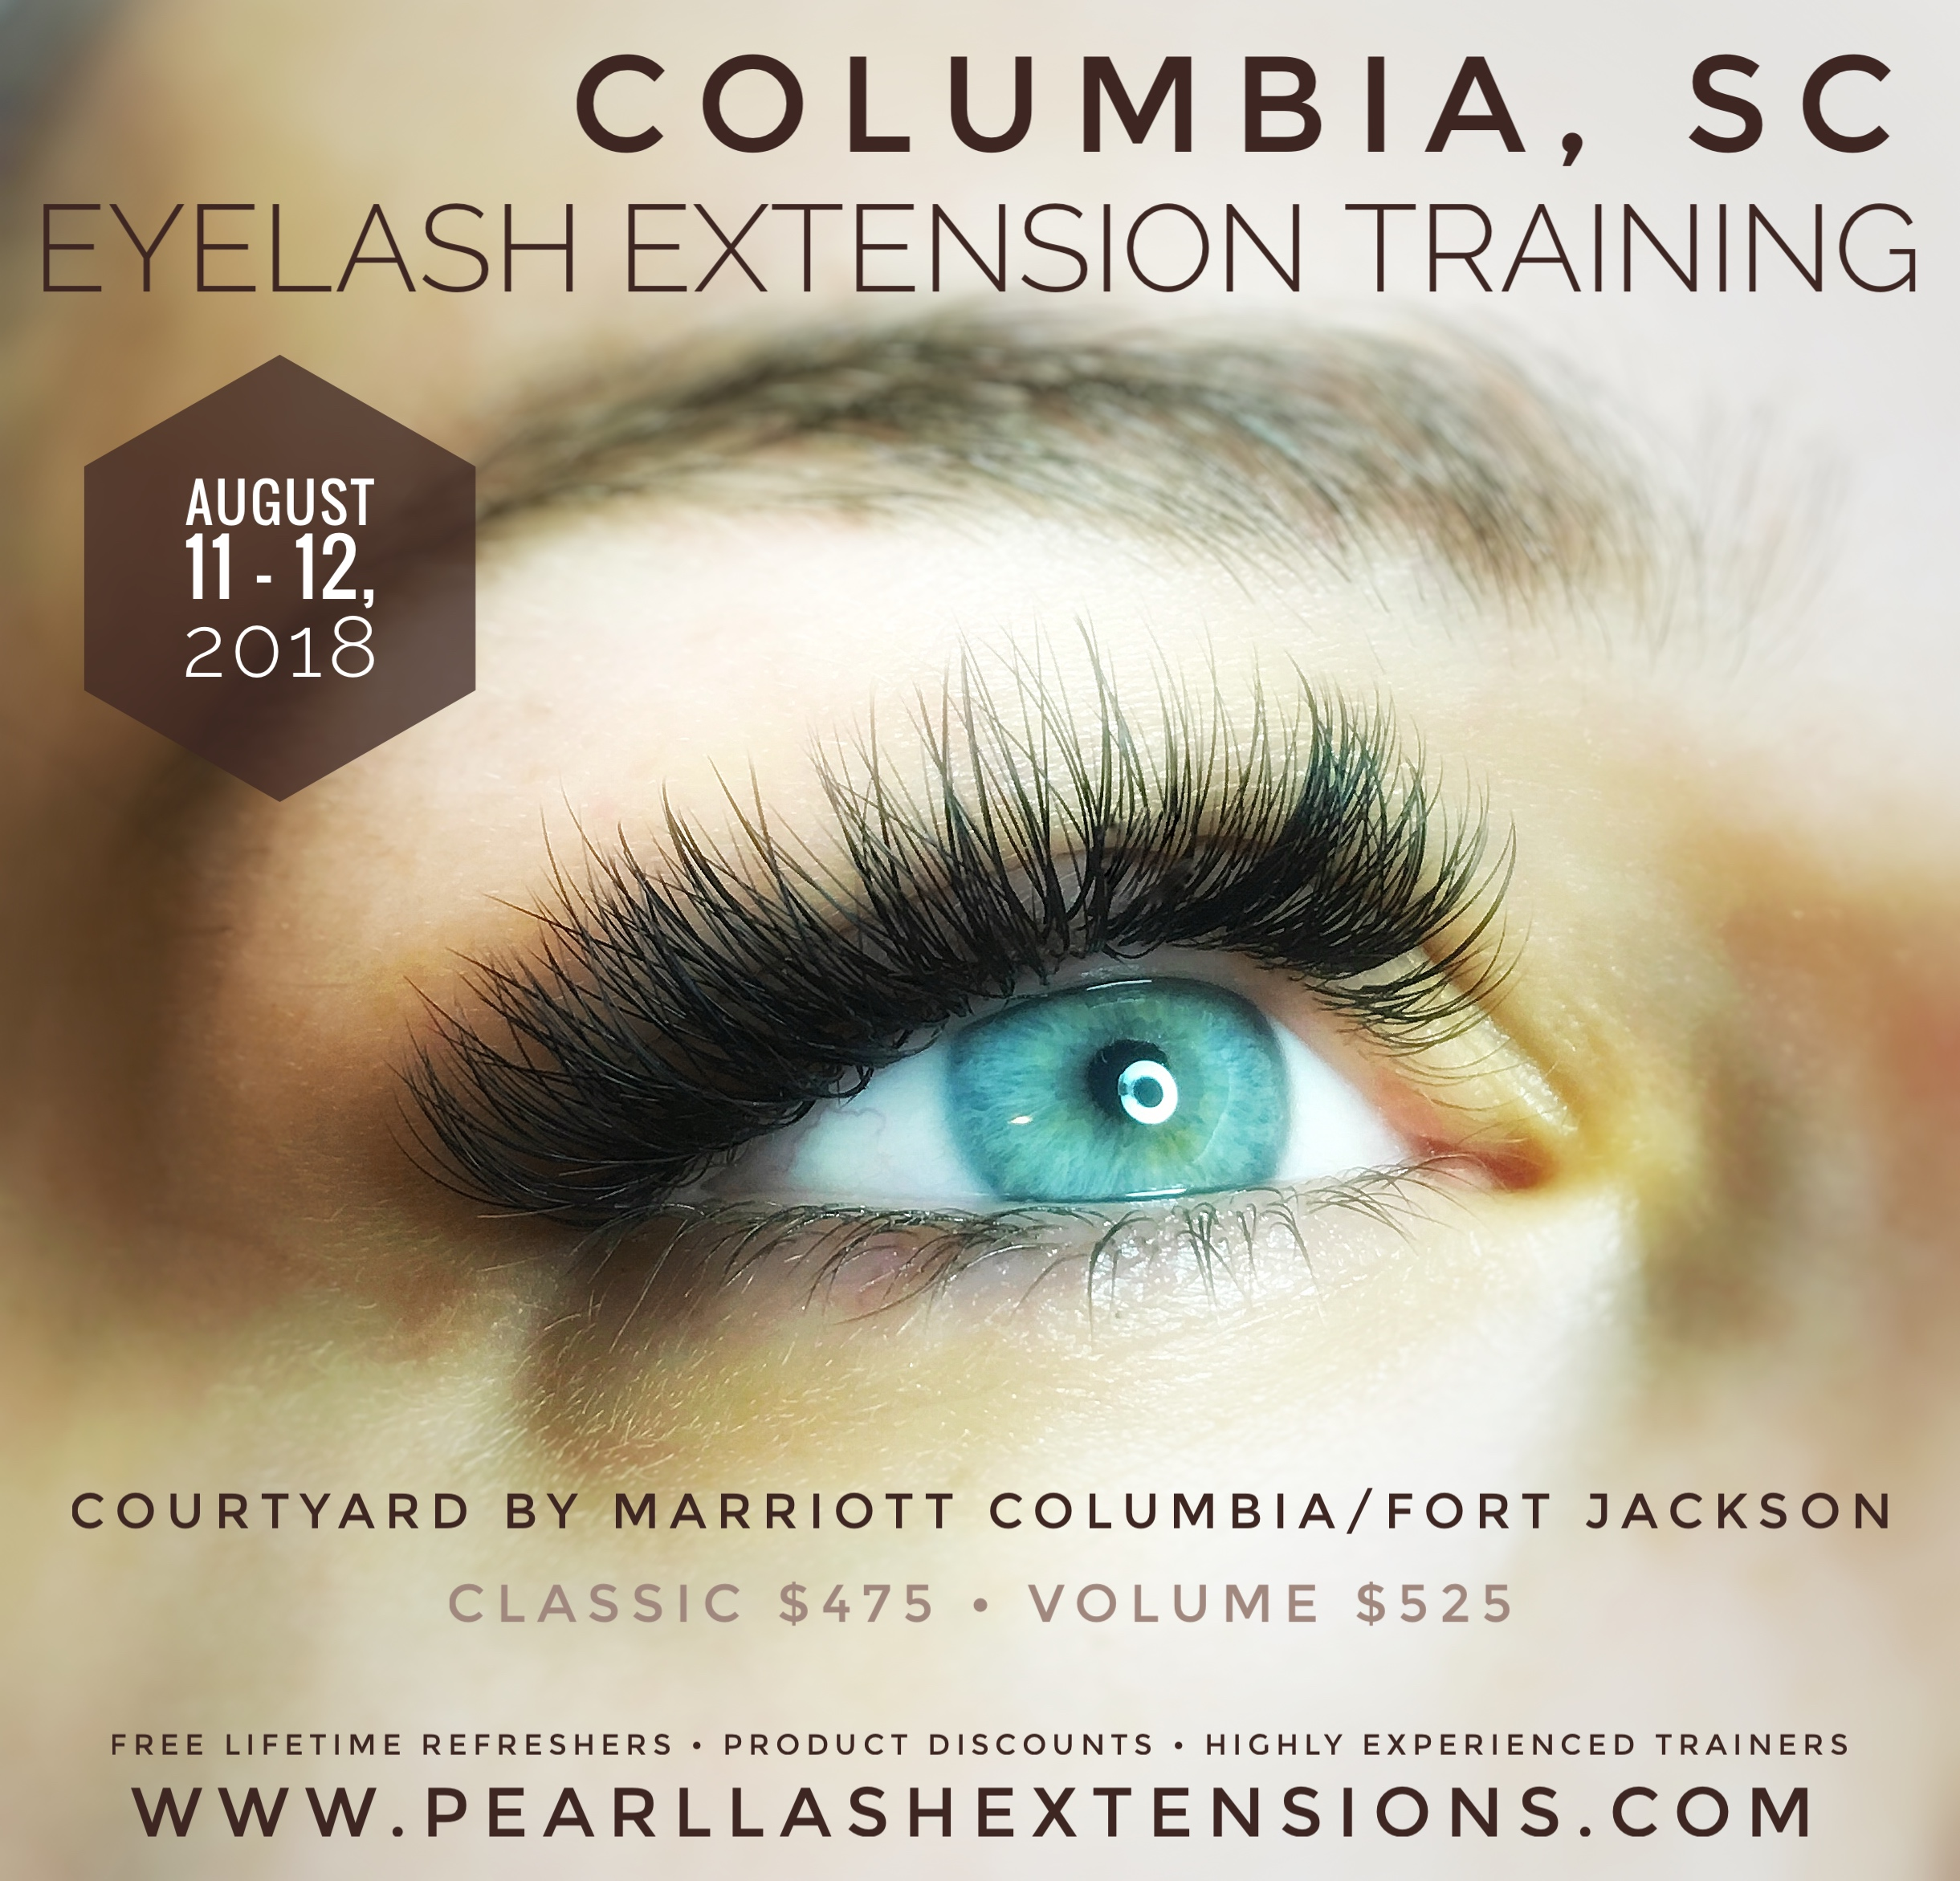 Eyelash Extension Training Columbia Sc August 2018 Event